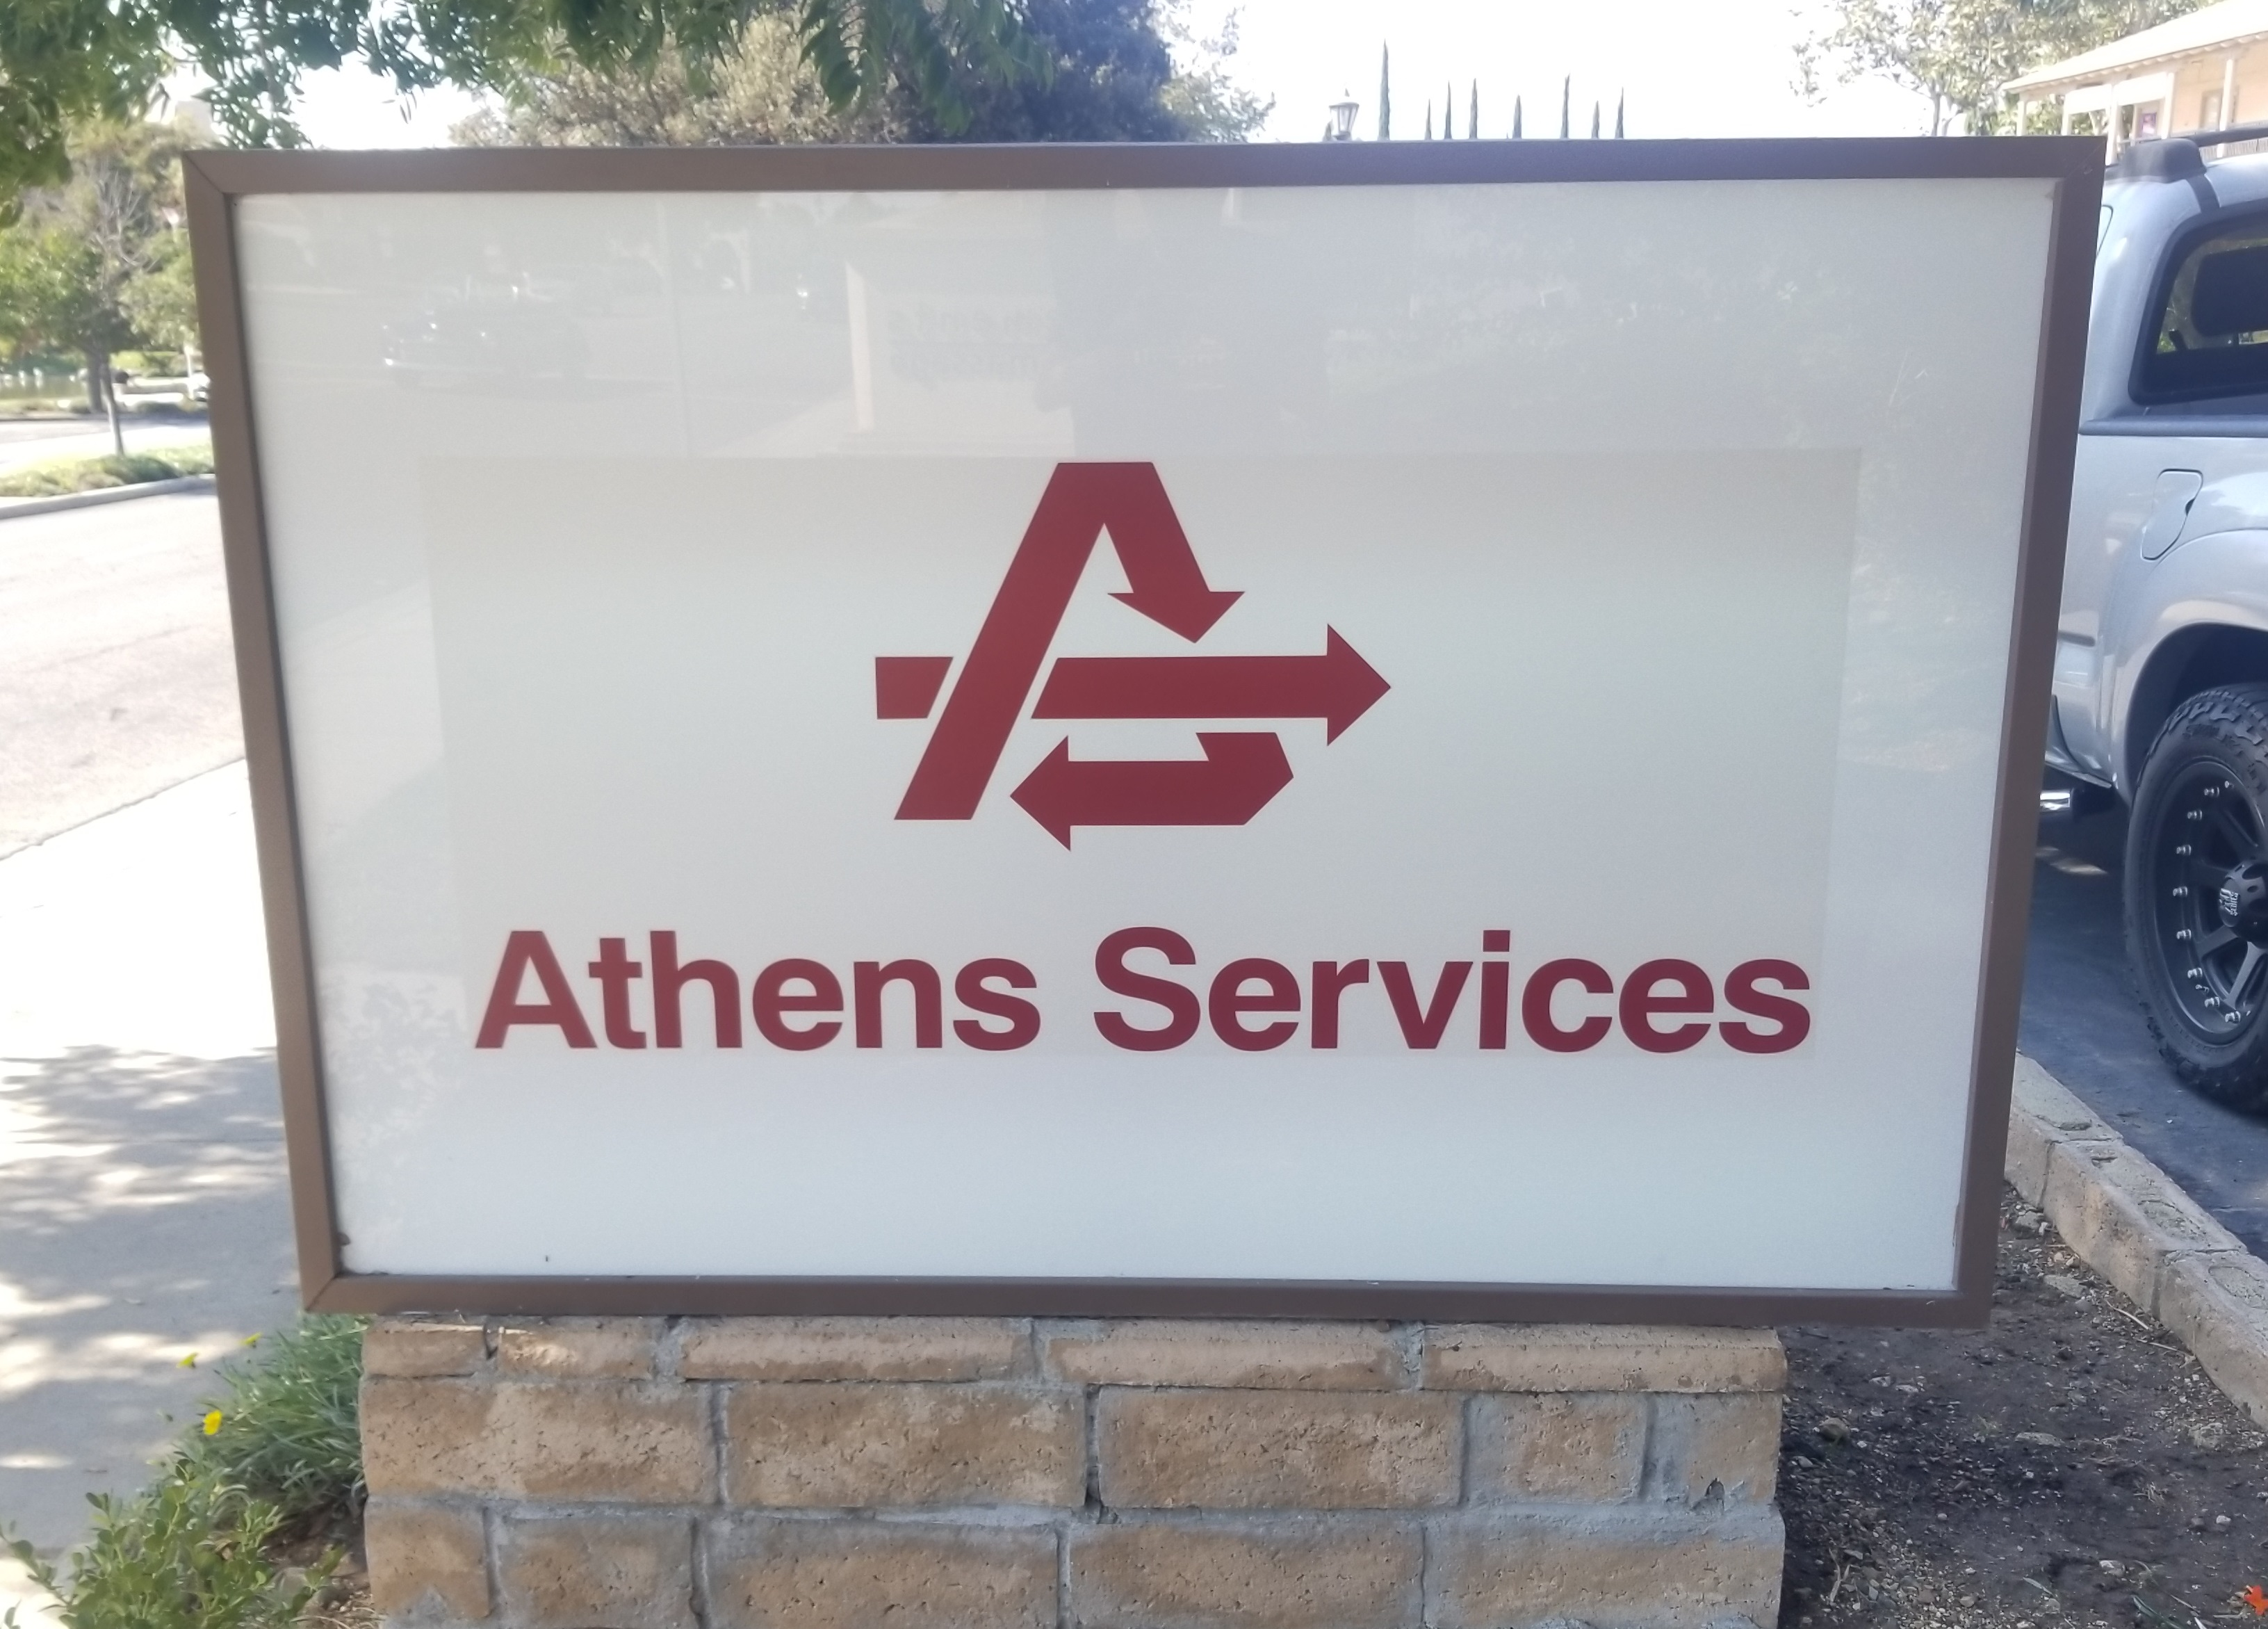 These are the monument sign lightbox inserts we made for Athens Services. The inserts are for the Thousand Oaks' monument sign that we built a year ago.